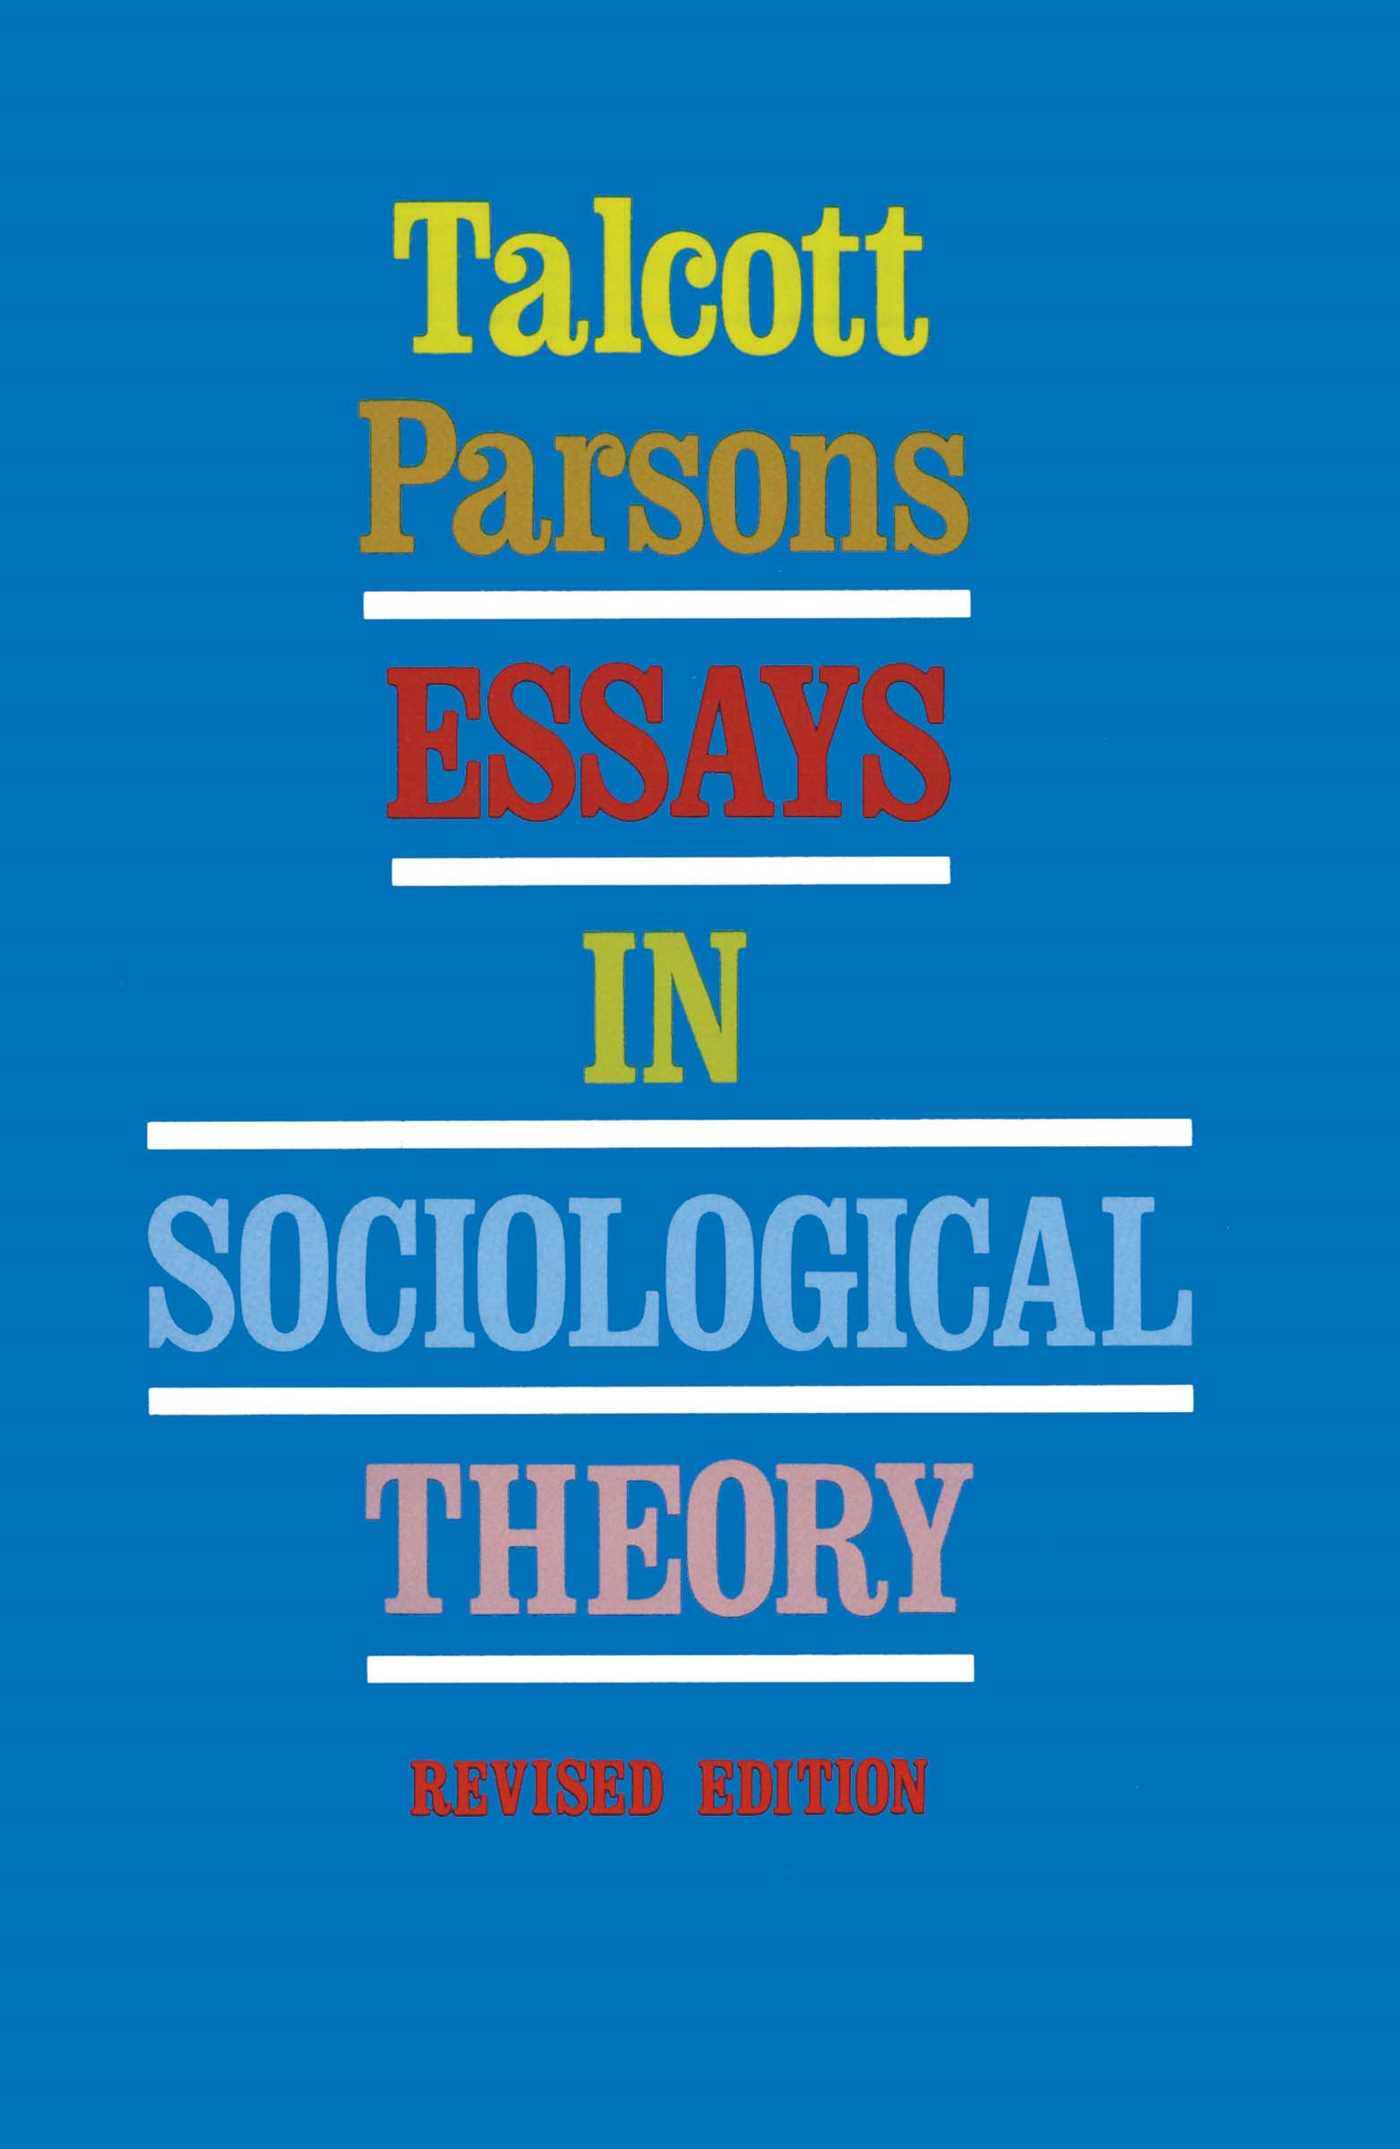 sociological theories and theorists essay Sociology theory essays: over 180,000 sociology theory essays, sociology theory term papers, sociology theory research paper, book reports 184 990 essays, term and.